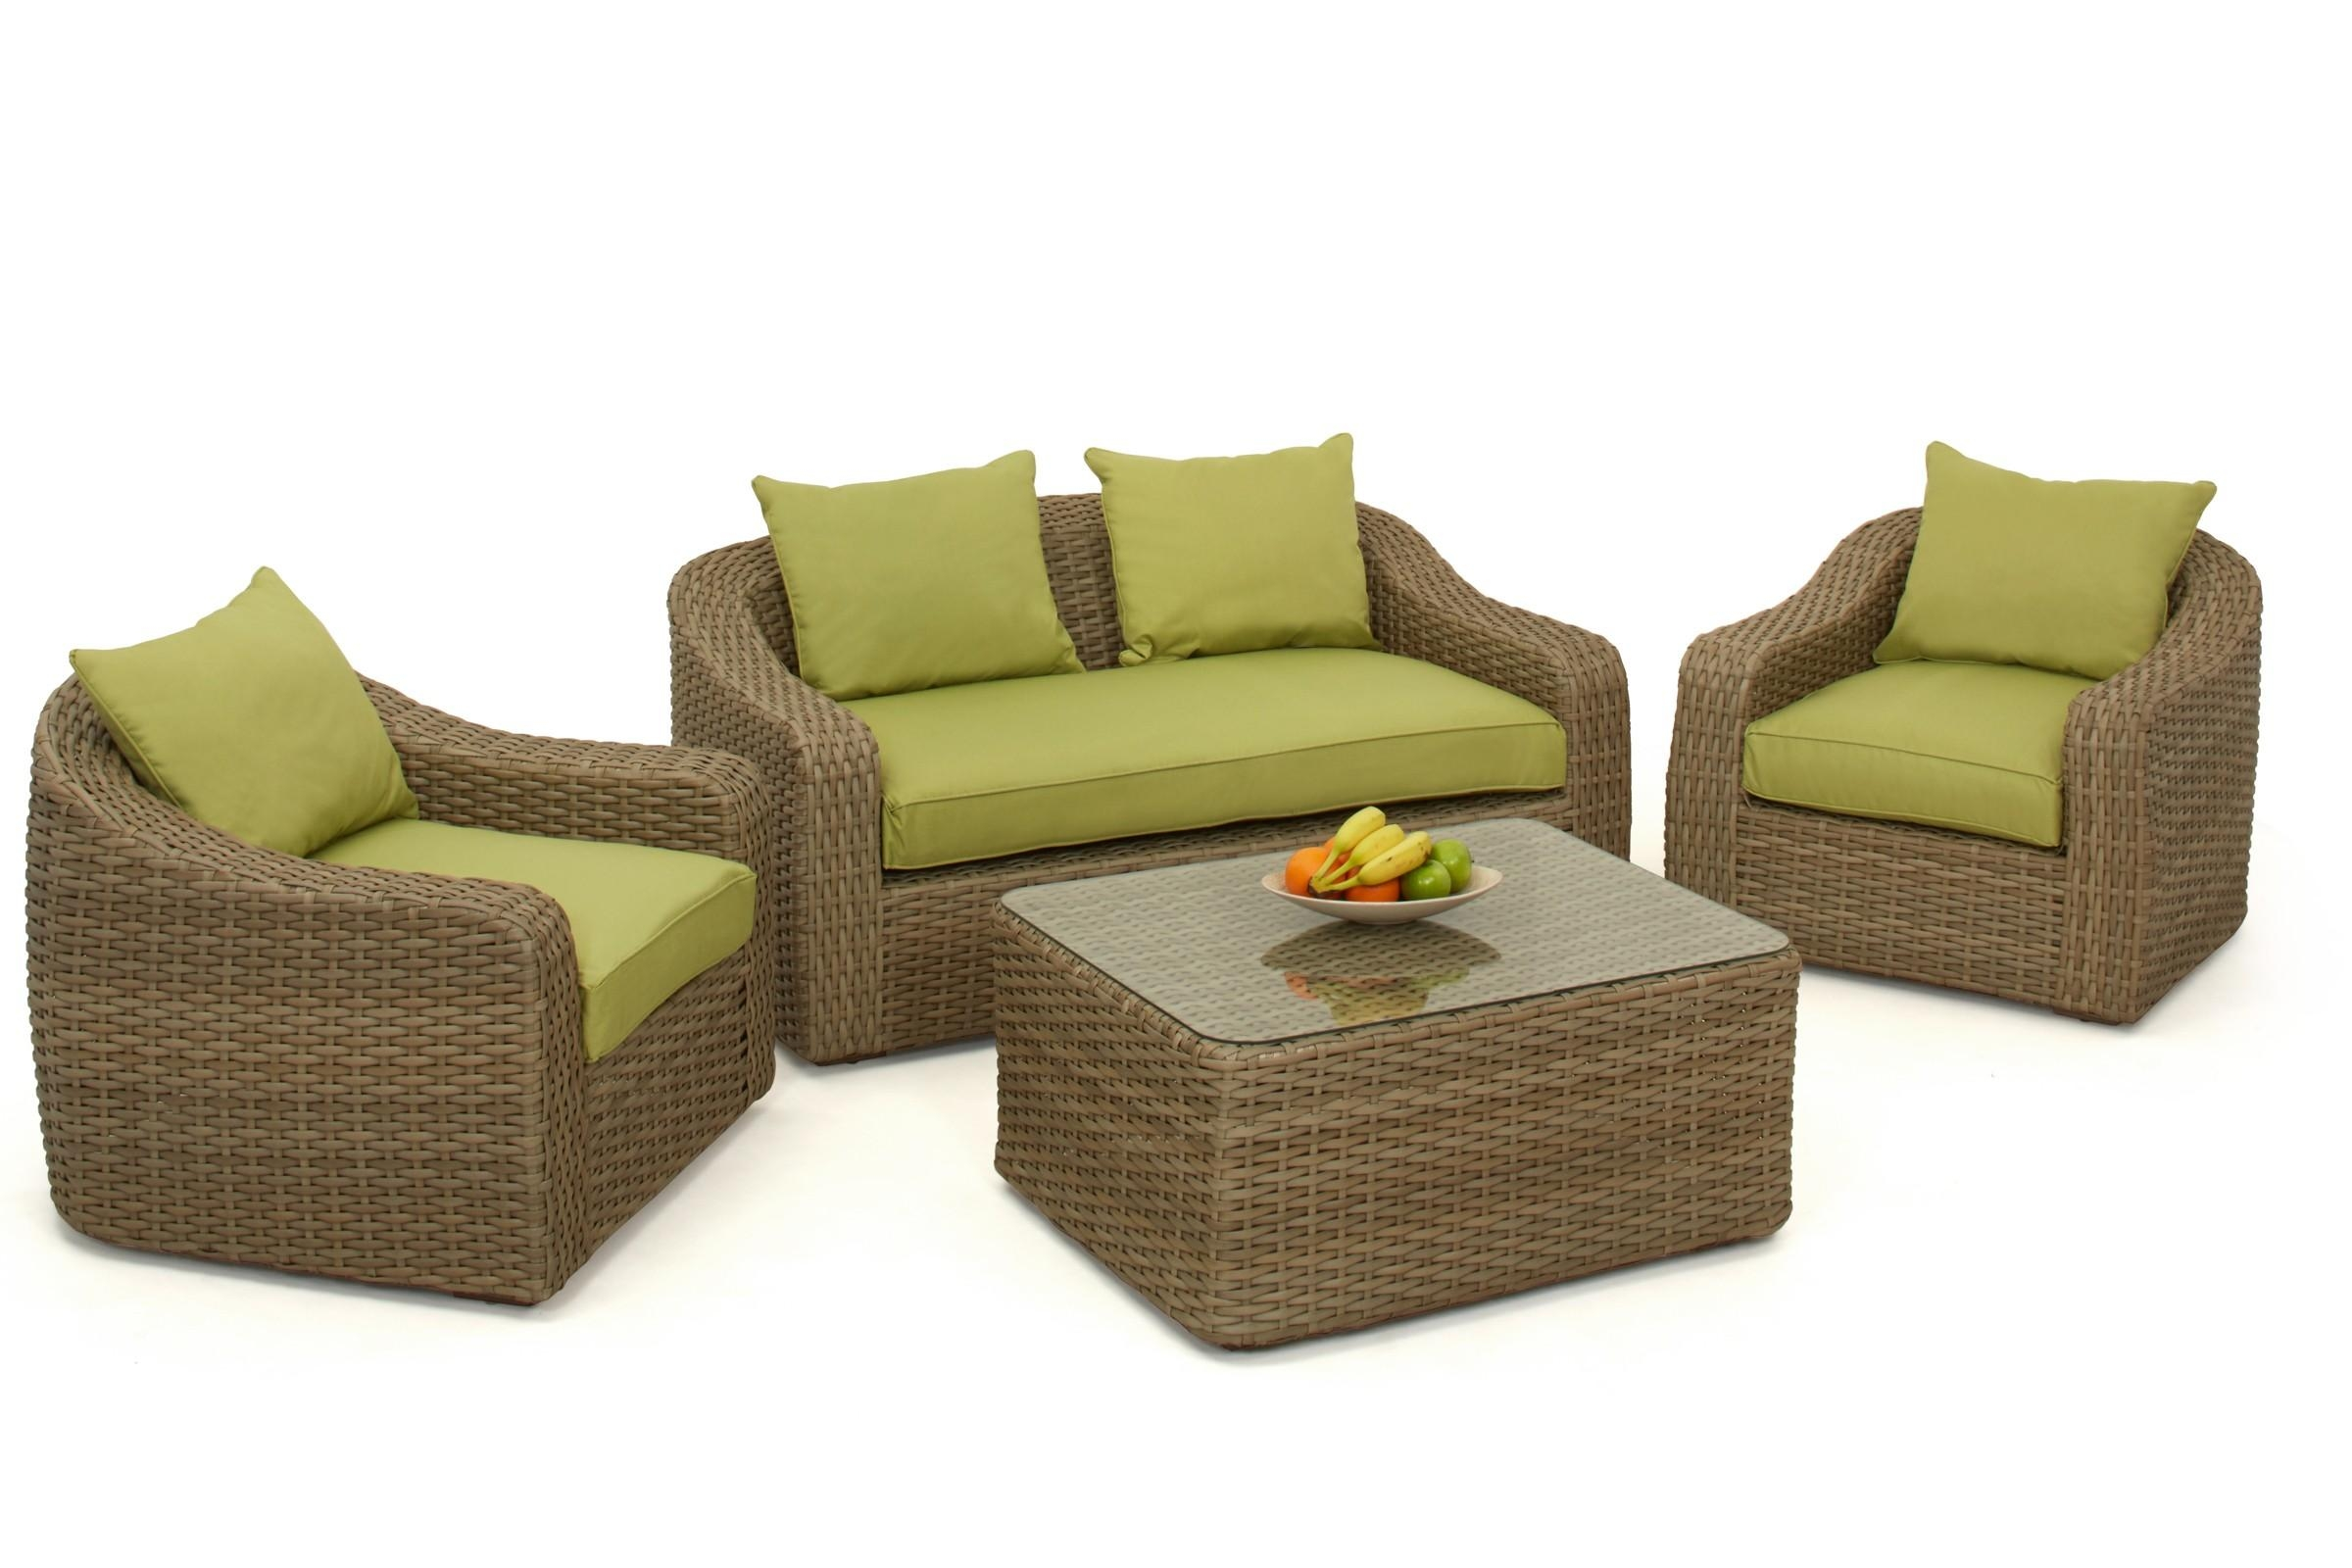 Maze Rattan Milan Rounded Sofa Set | Maze Living In Rounded Sofa (View 13 of 20)